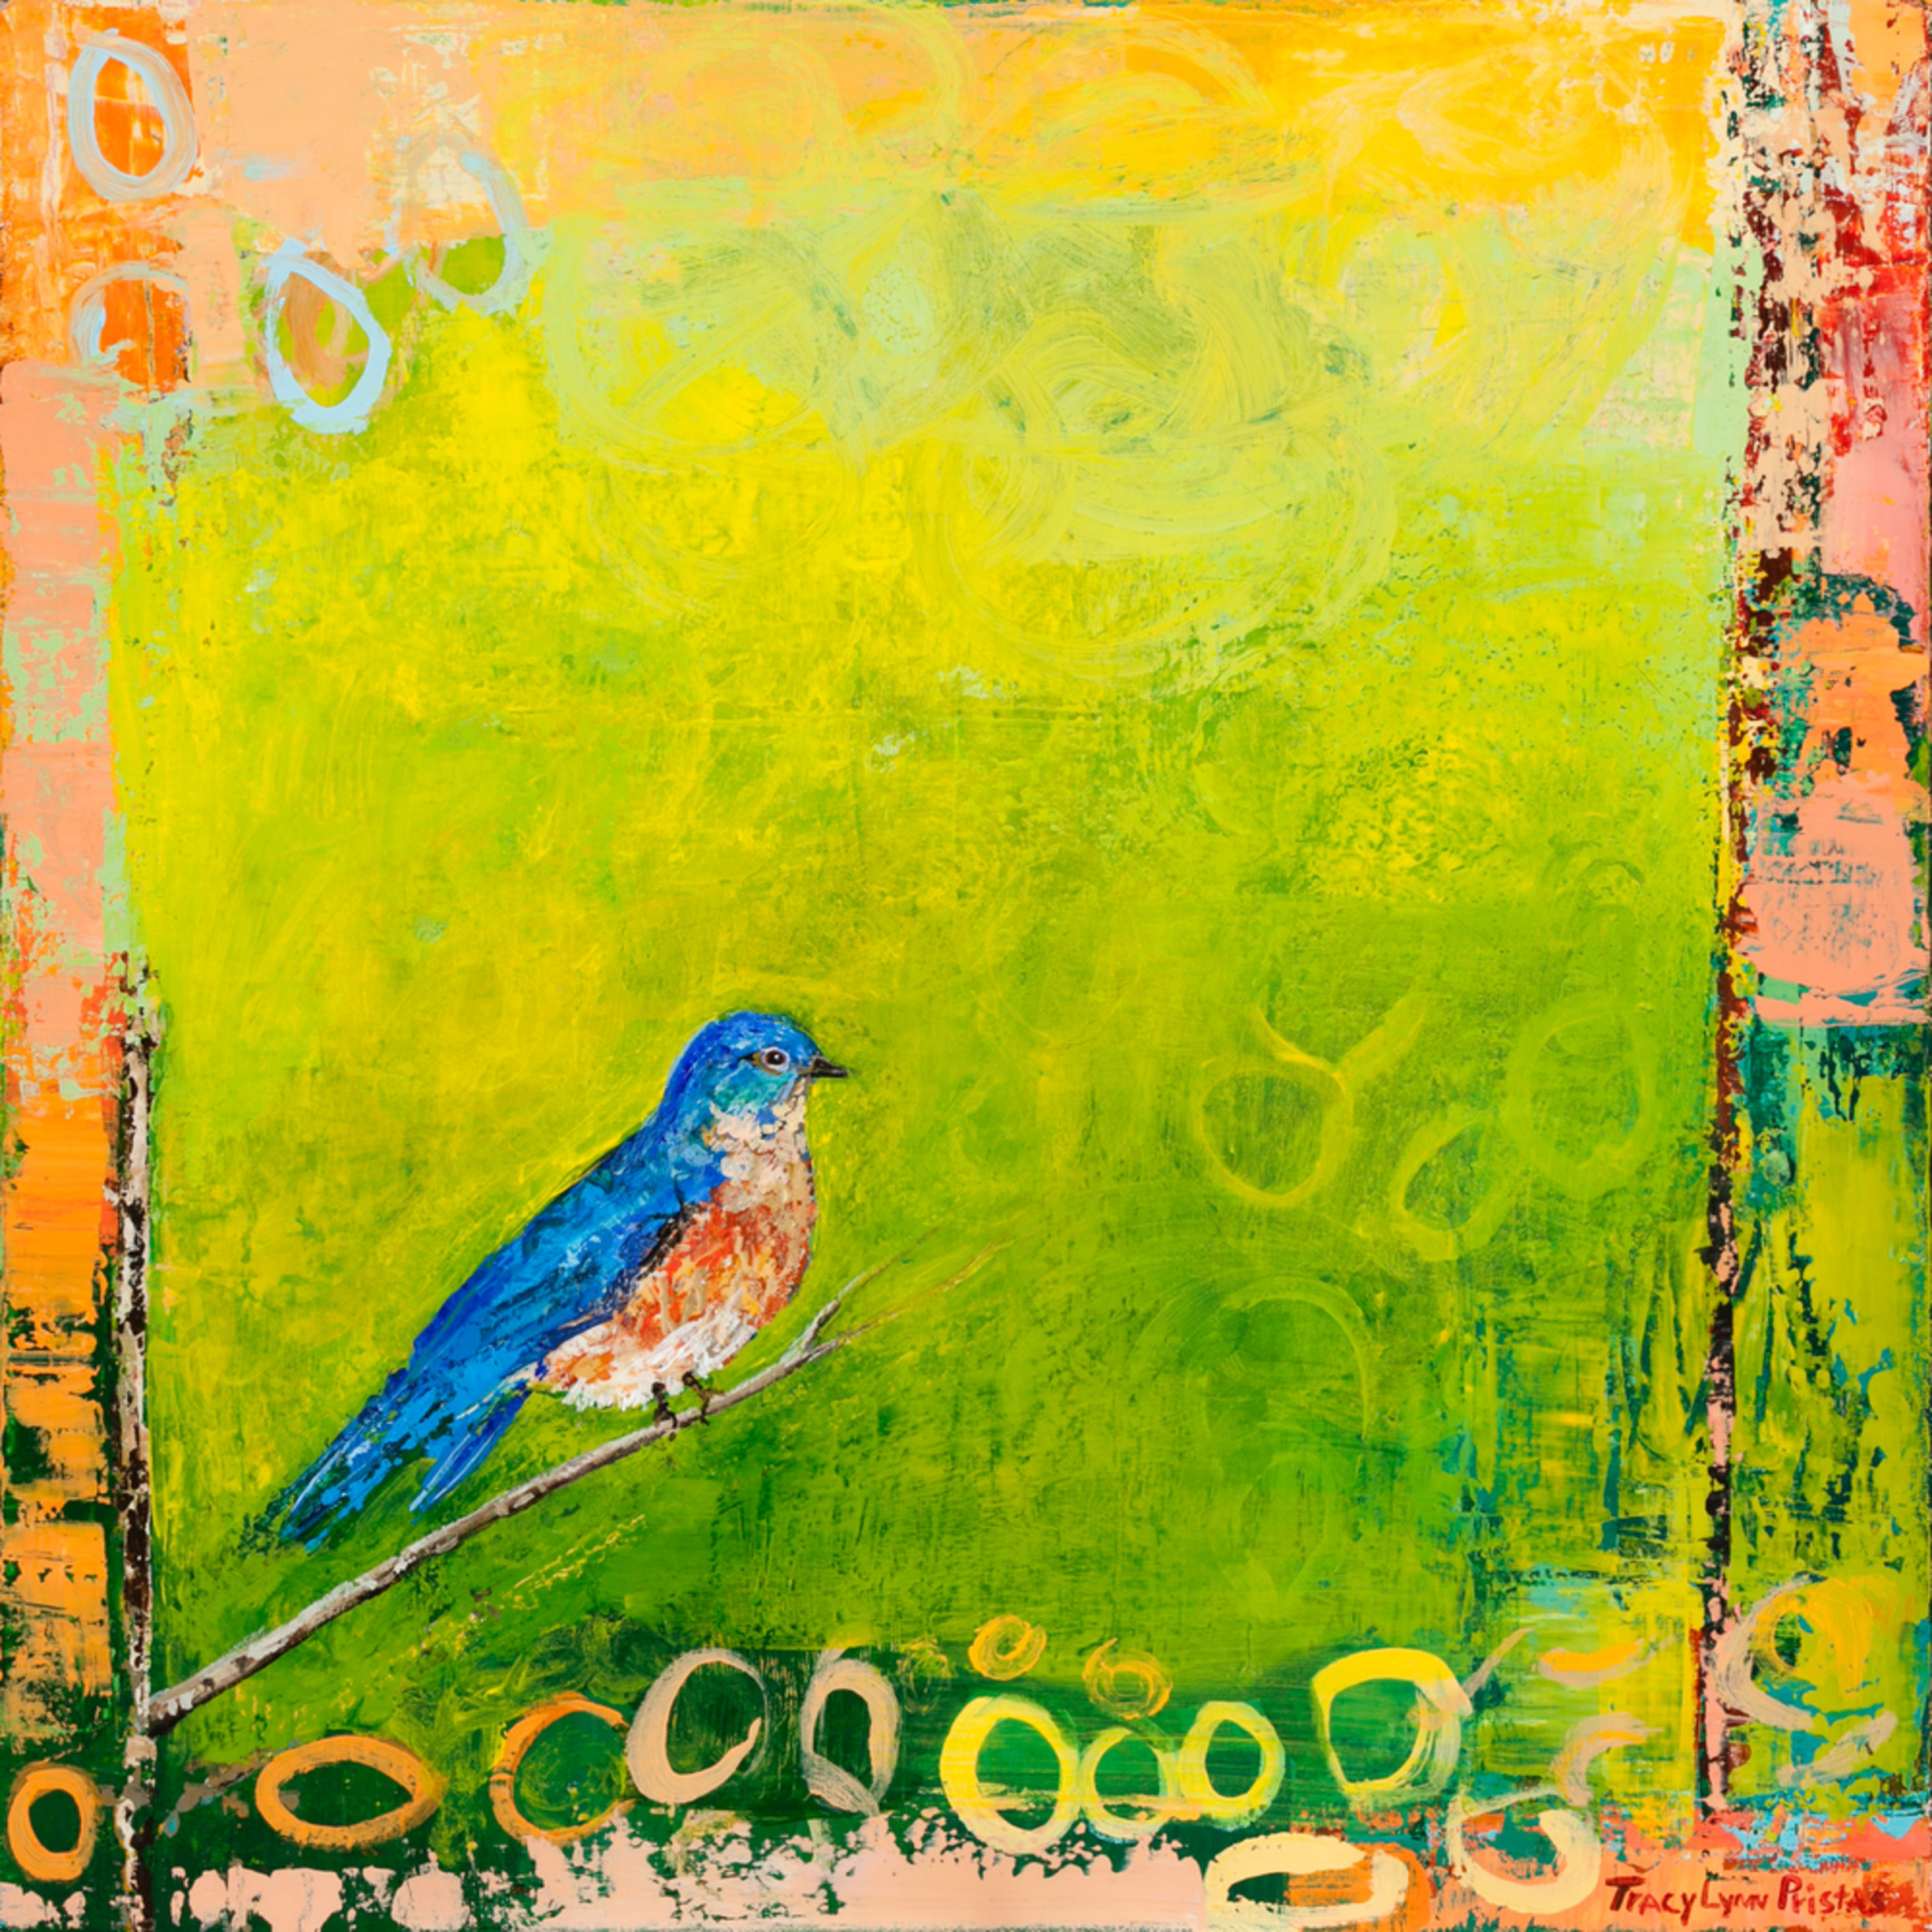 Tracy lynn pristas expected converstaions framed original bluebird painting qw7ava